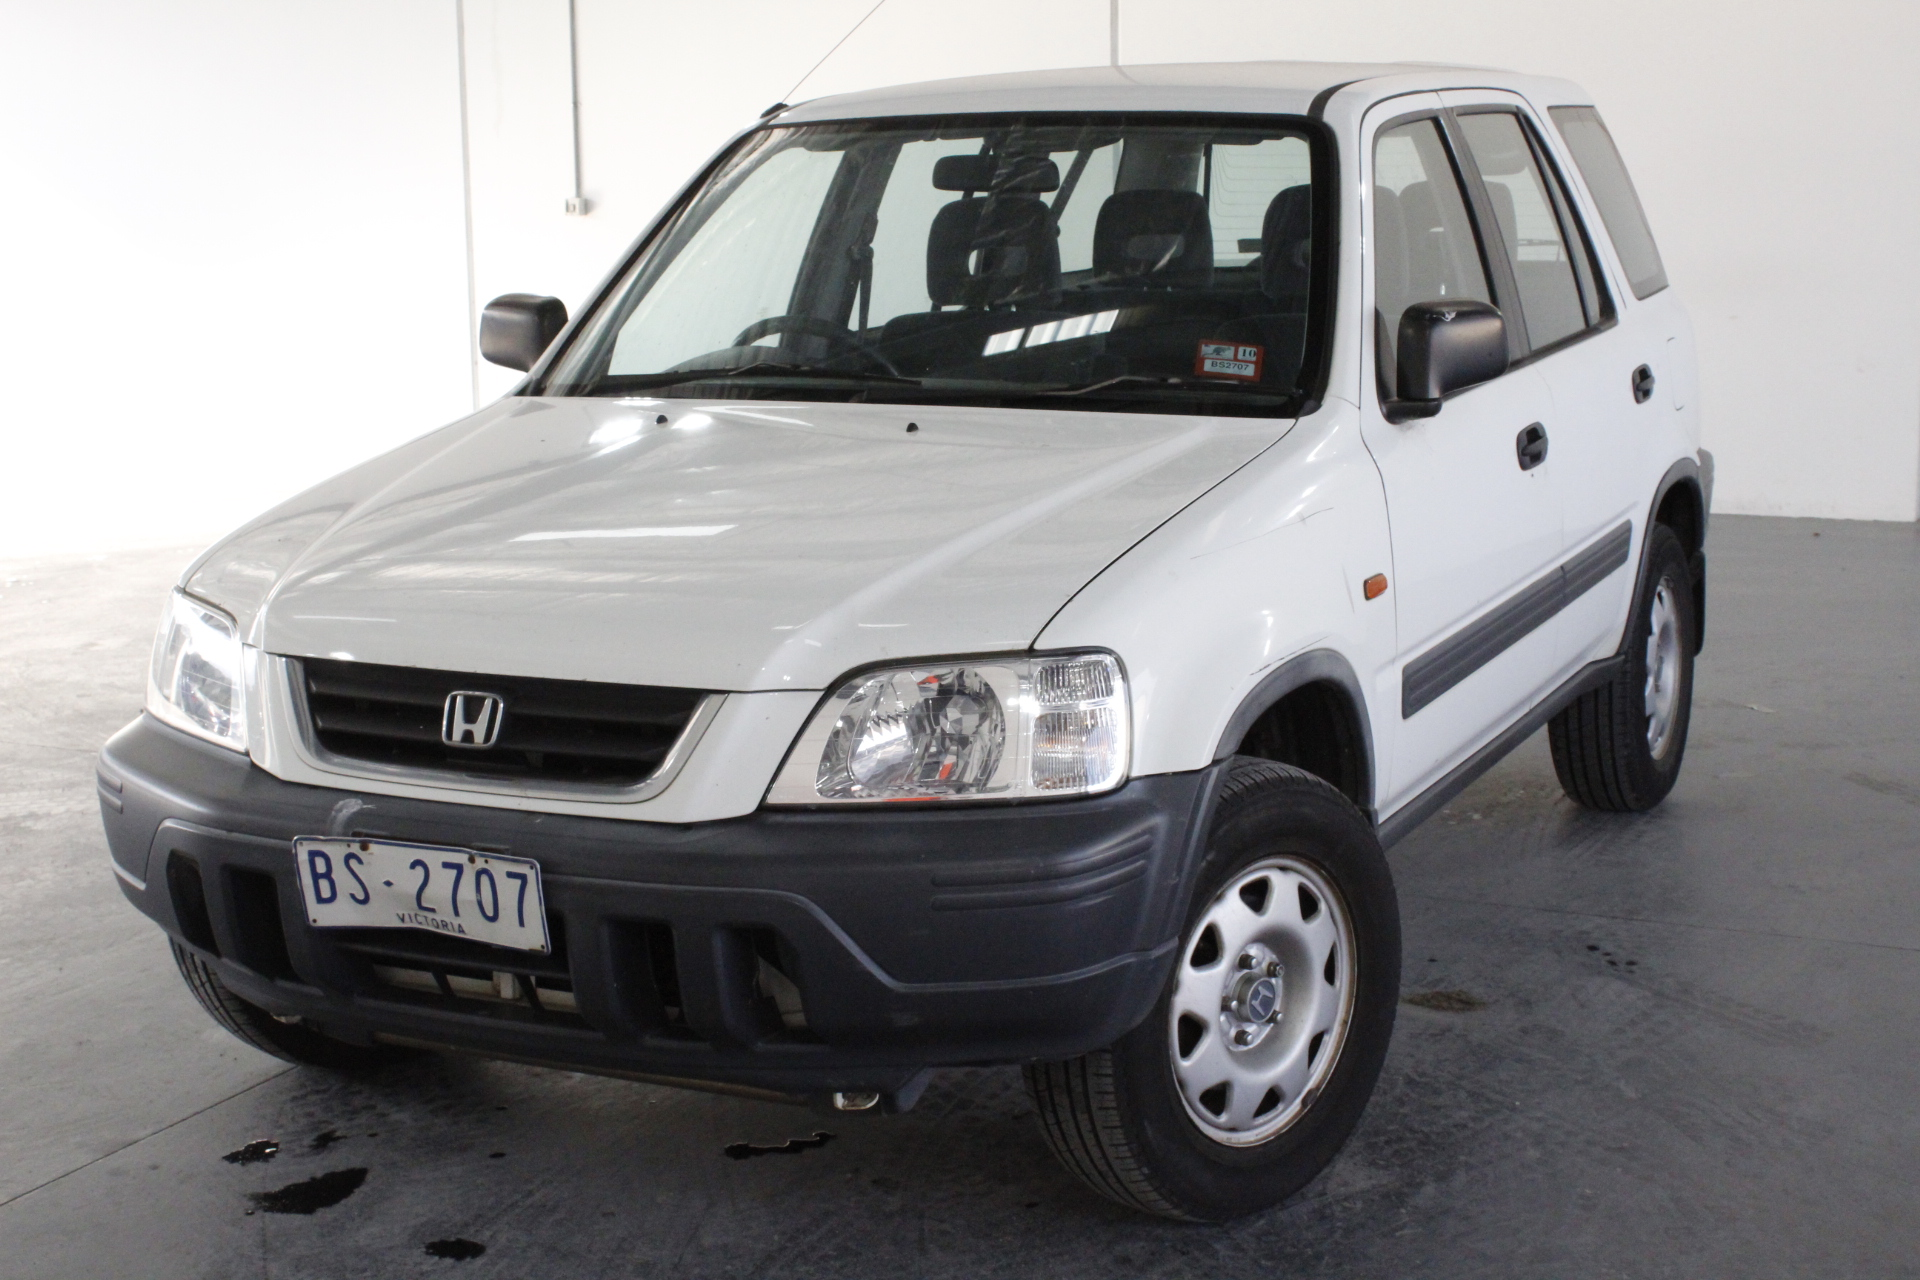 vehicle in at is vert montr sold system crv honda being al v en lombardi this the cr sale a price for displays by and of located qc